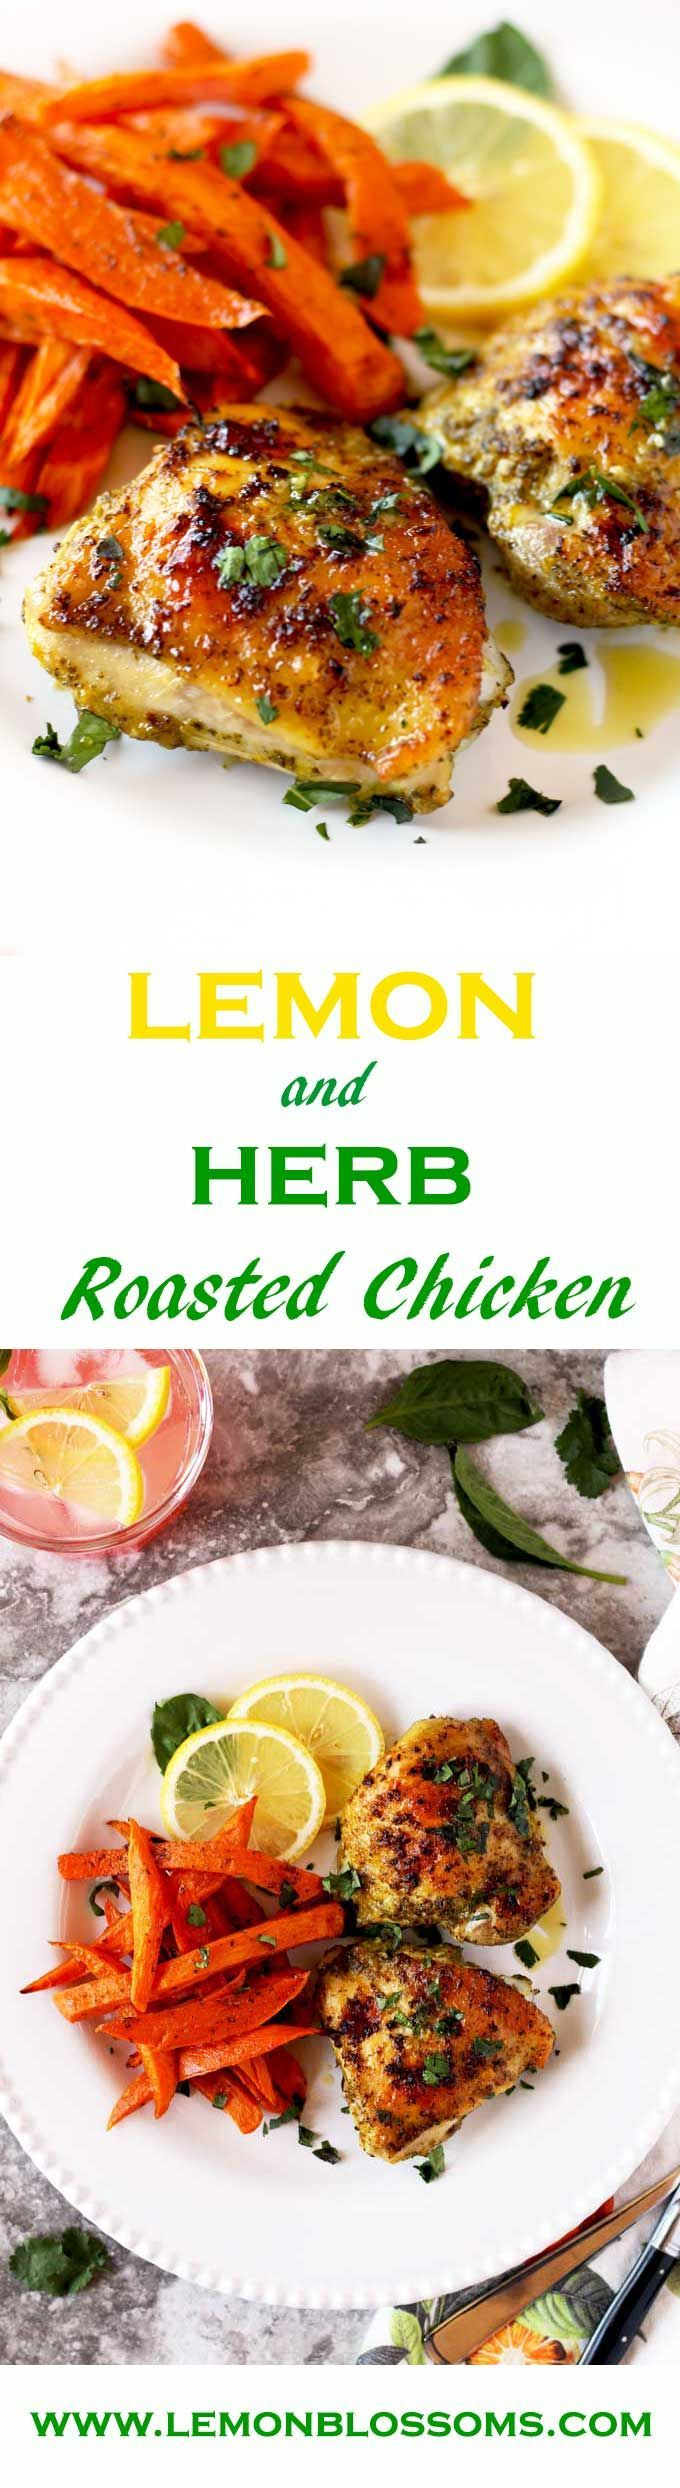 These golden, moist and tender lemon and herb roasted chicken thighs are packed with so much flavor. The vibrant taste of lemon and the freshness of the herbs make this dish out of this world delicious!